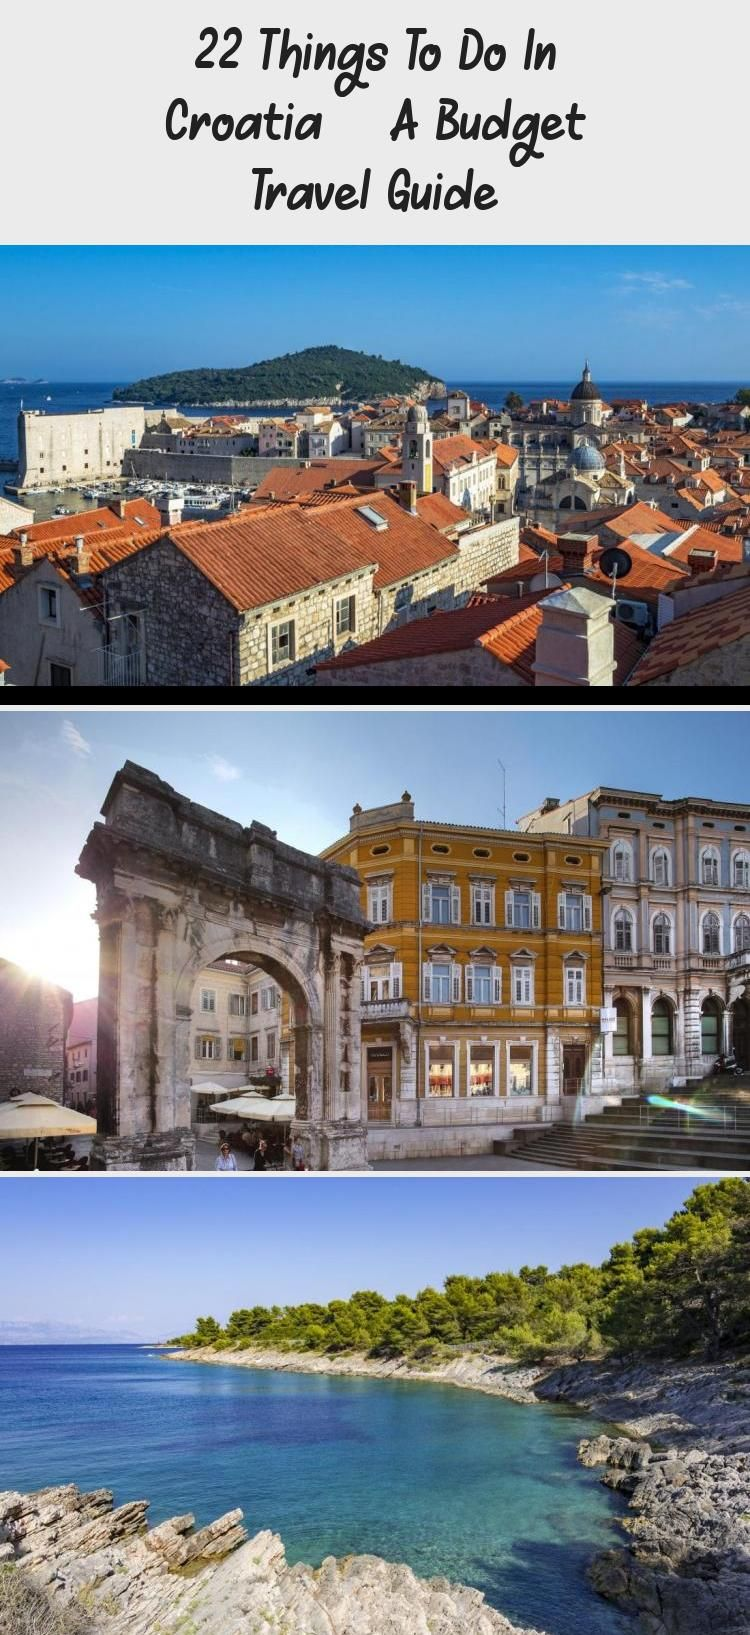 Croatia Travel The Best Places To Visit In Croatia On A Budget Dubrovnik Split Zagreb And More A Cool Places To Visit Budget Travel Family Family Travel